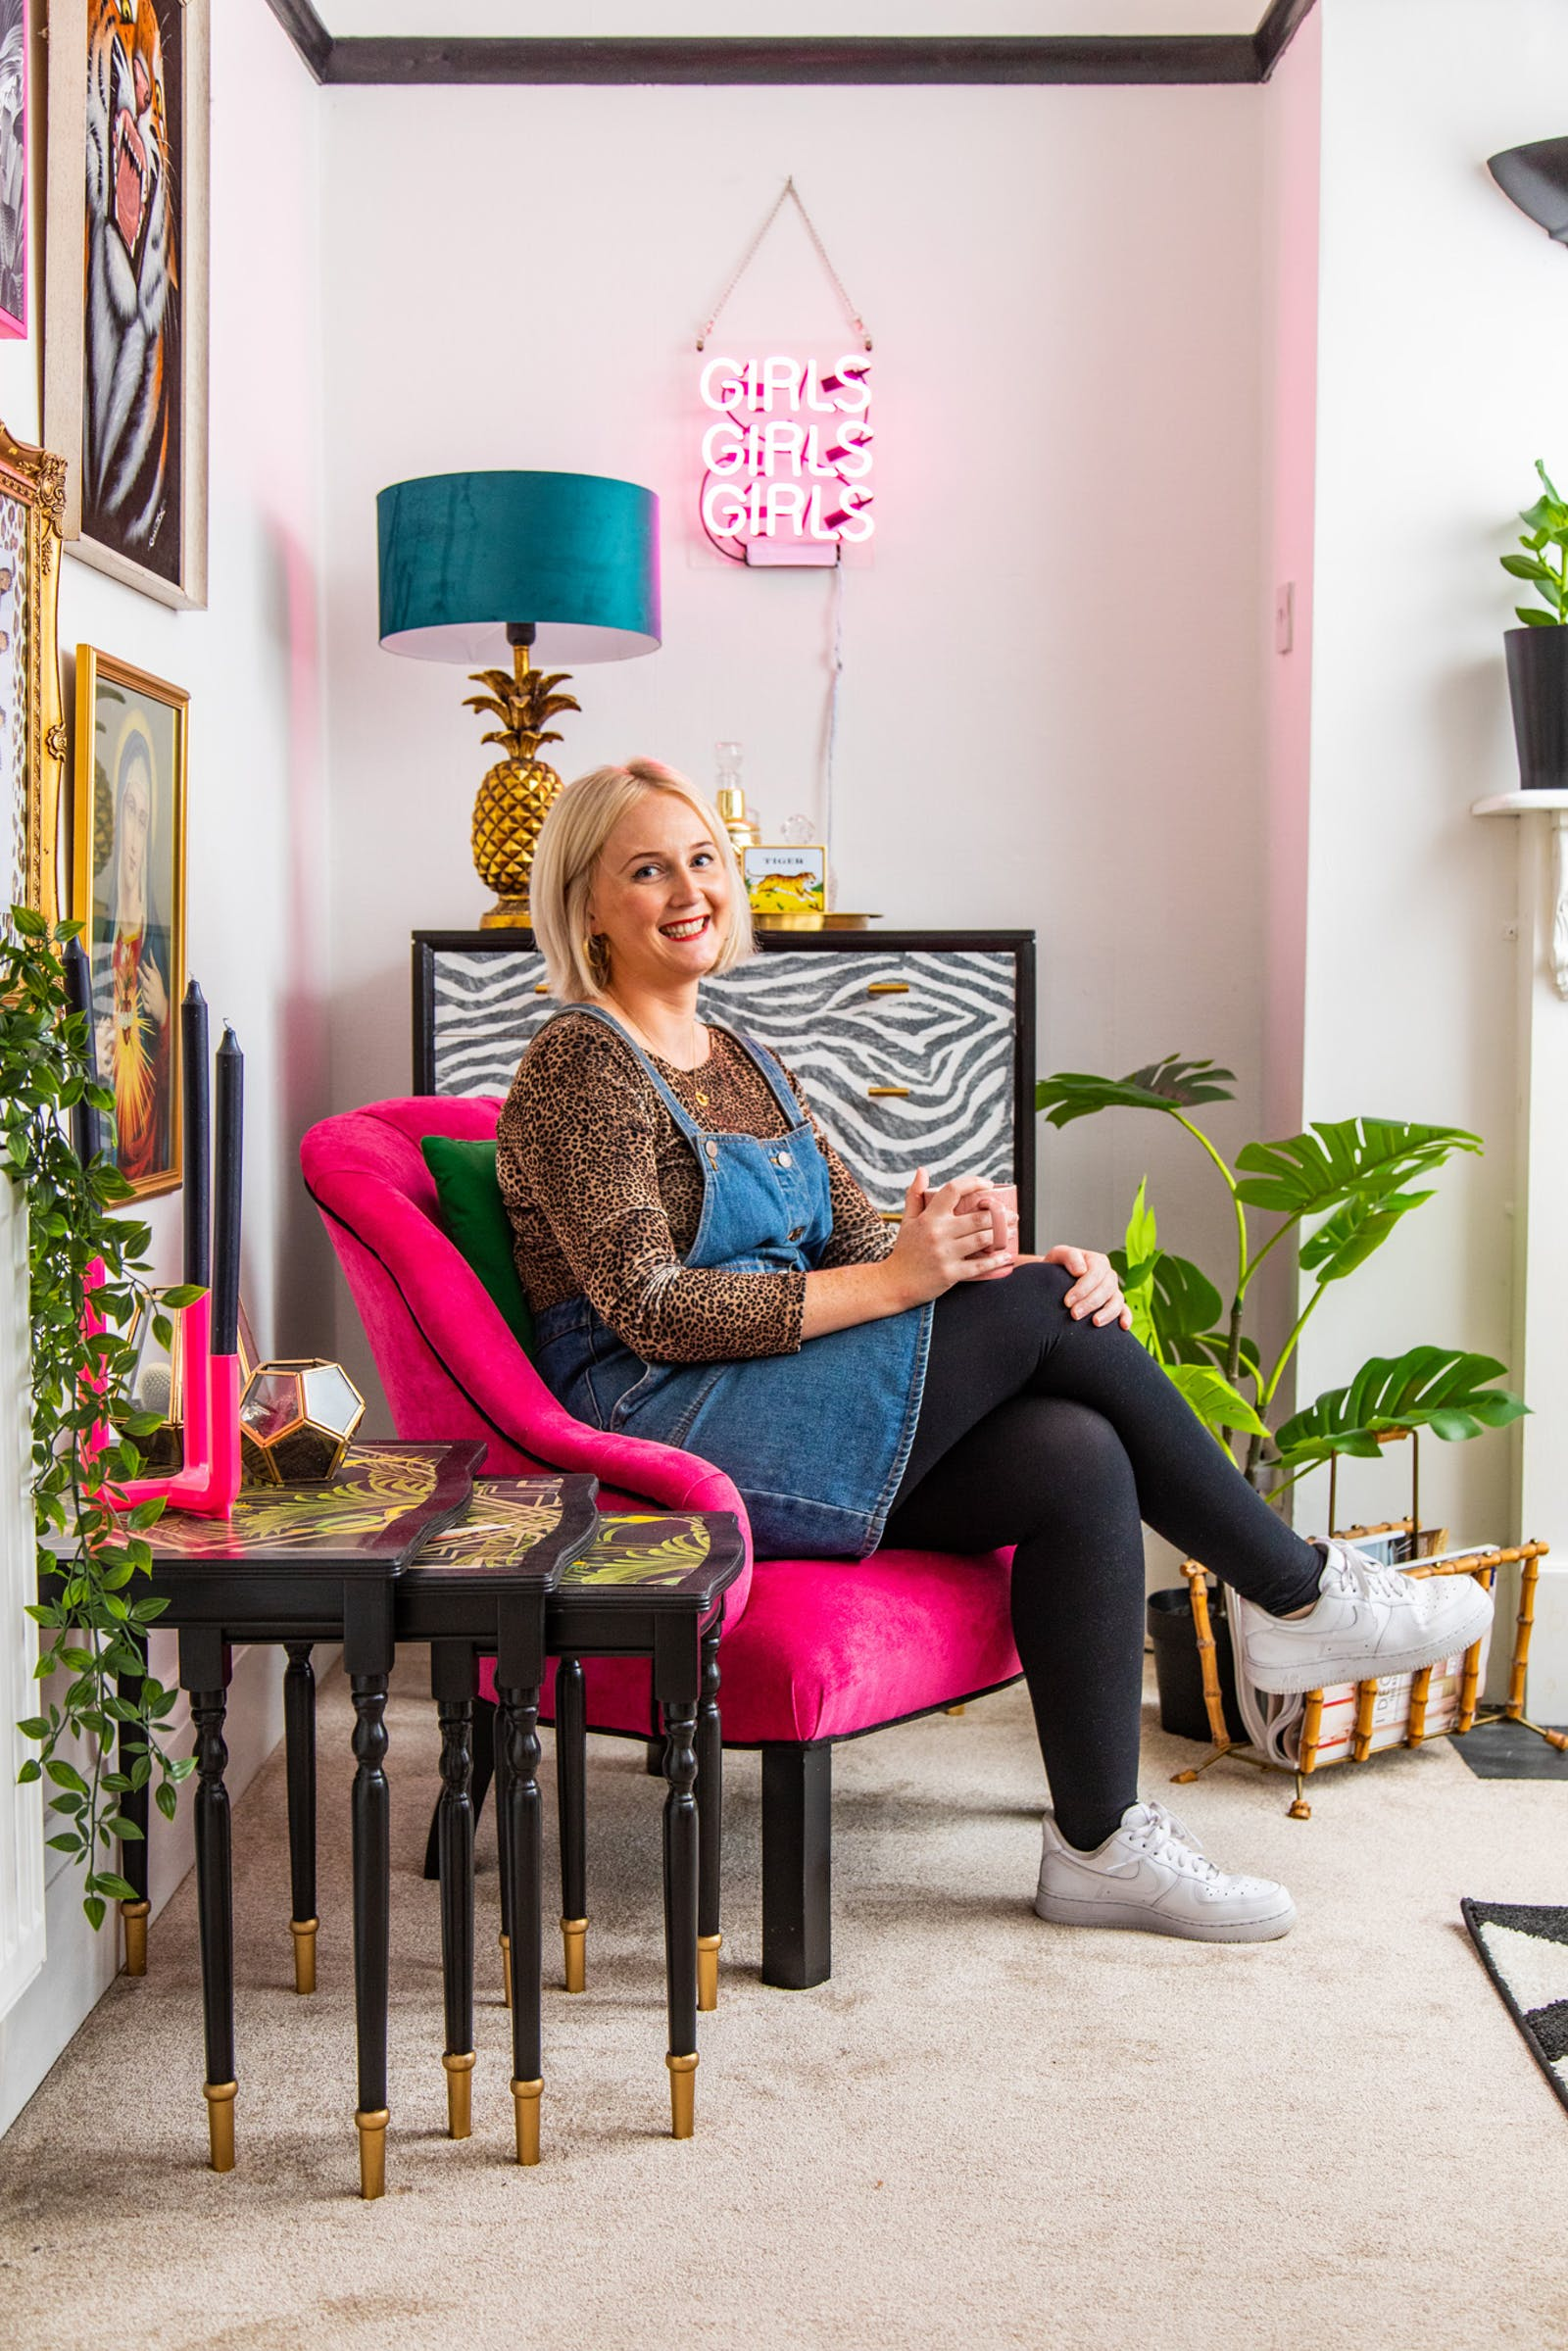 Blonde woman sitting on pink armchair in living room